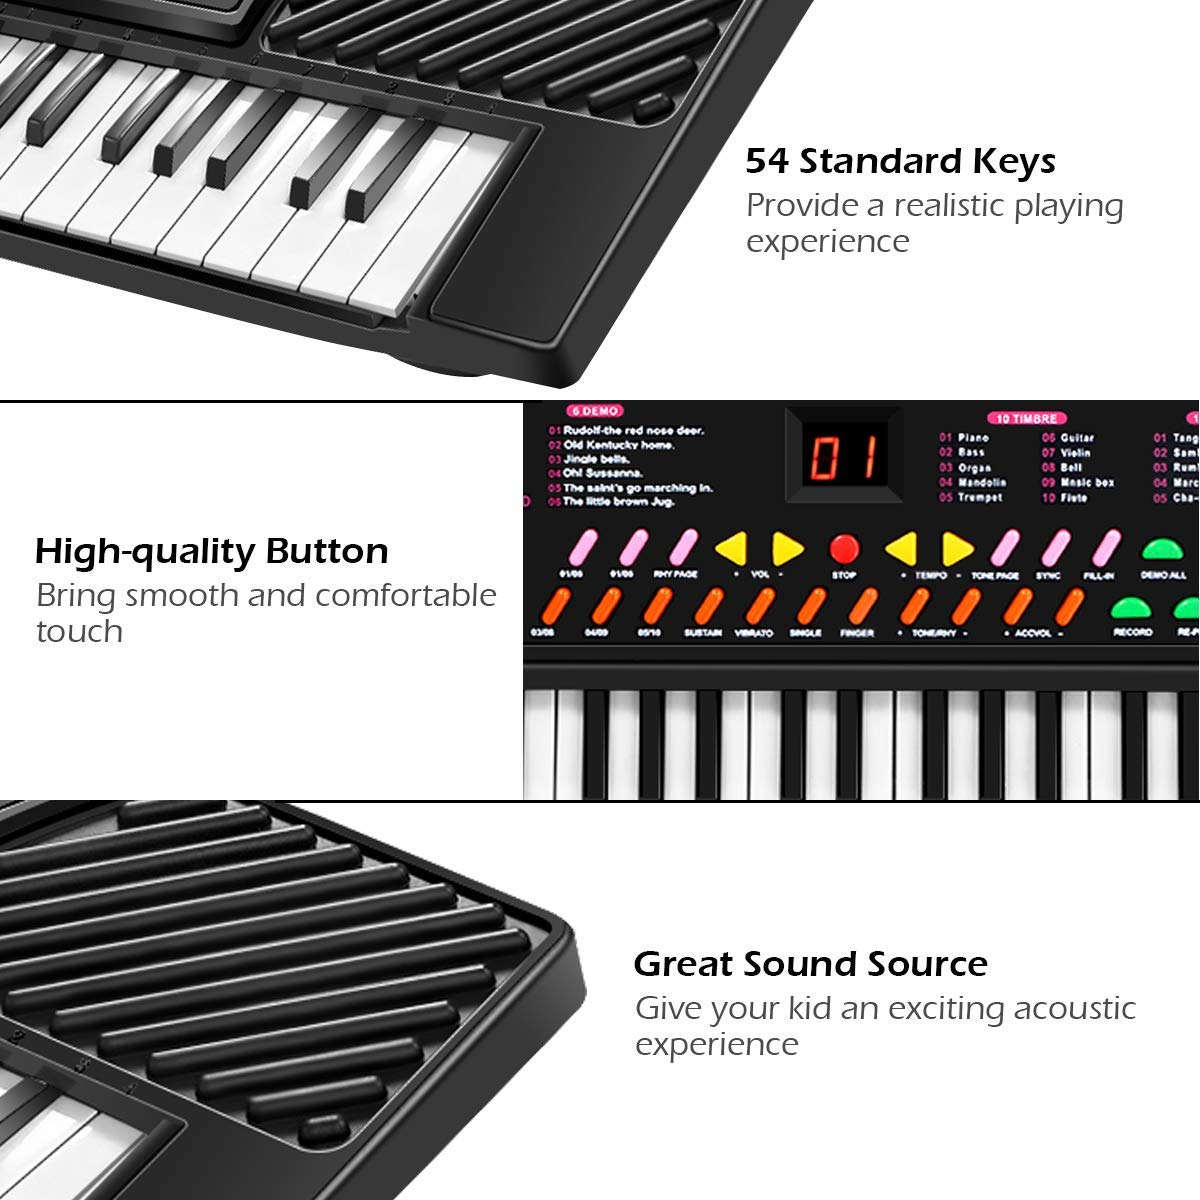 Tangkula 54-Key Electronic Keyboard for Kids Beginners with Mic & Adapter Including LED Digital Display, Learning Function & Demo Songs Standard Accordion Keys Piano Keyboard (Black) by TANGKULA (Image #5)